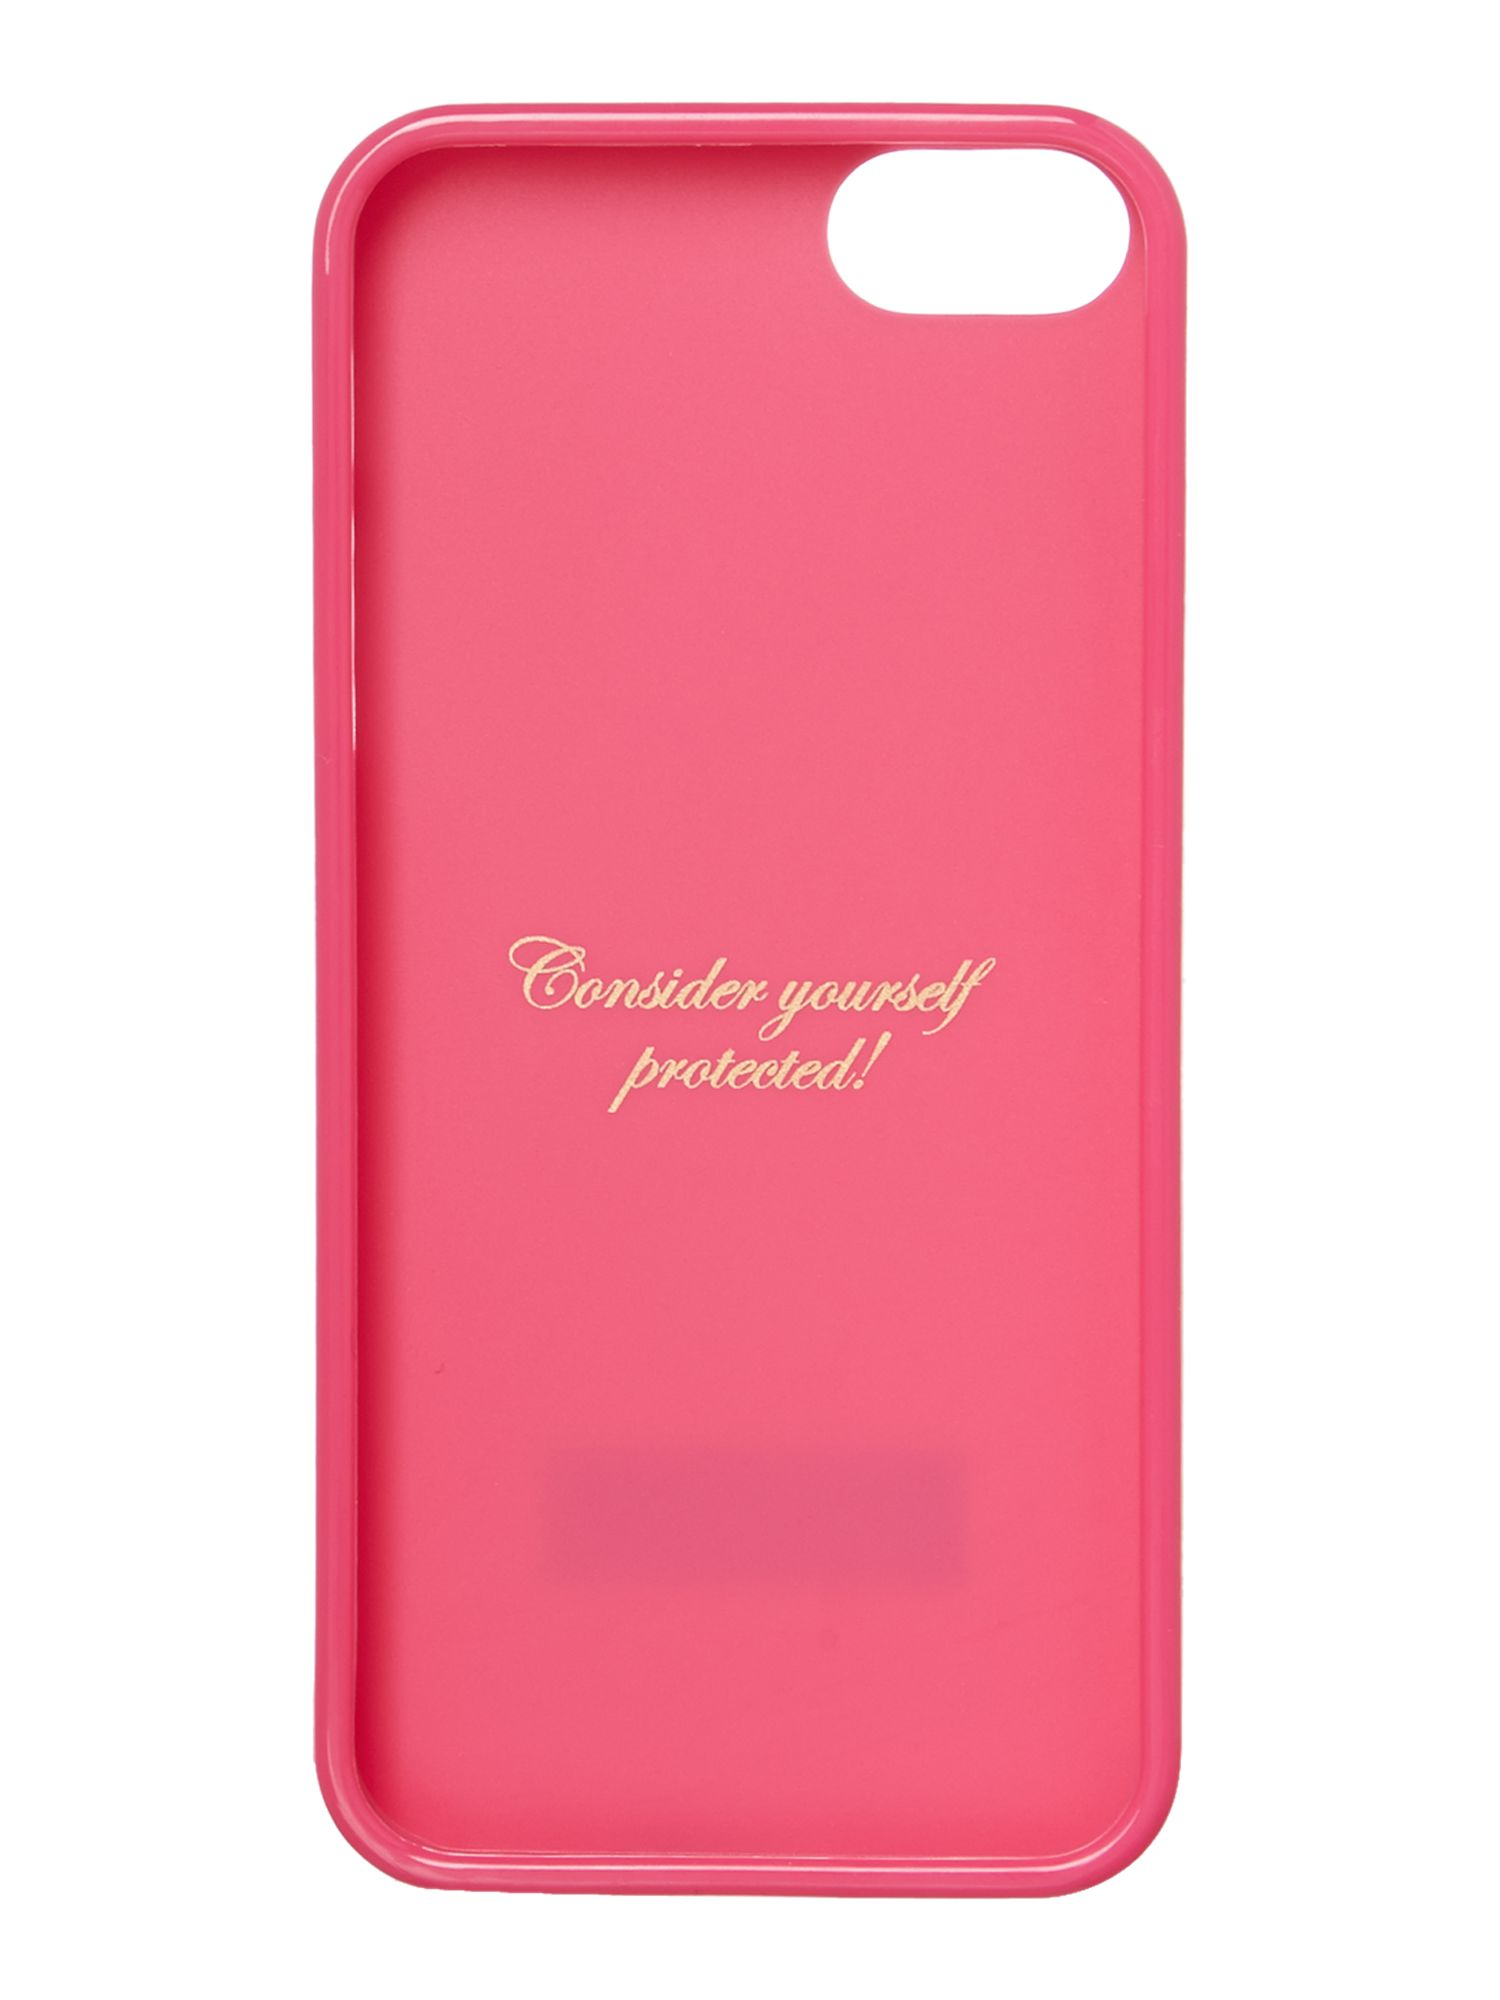 Jelly pink iPhone 5 case